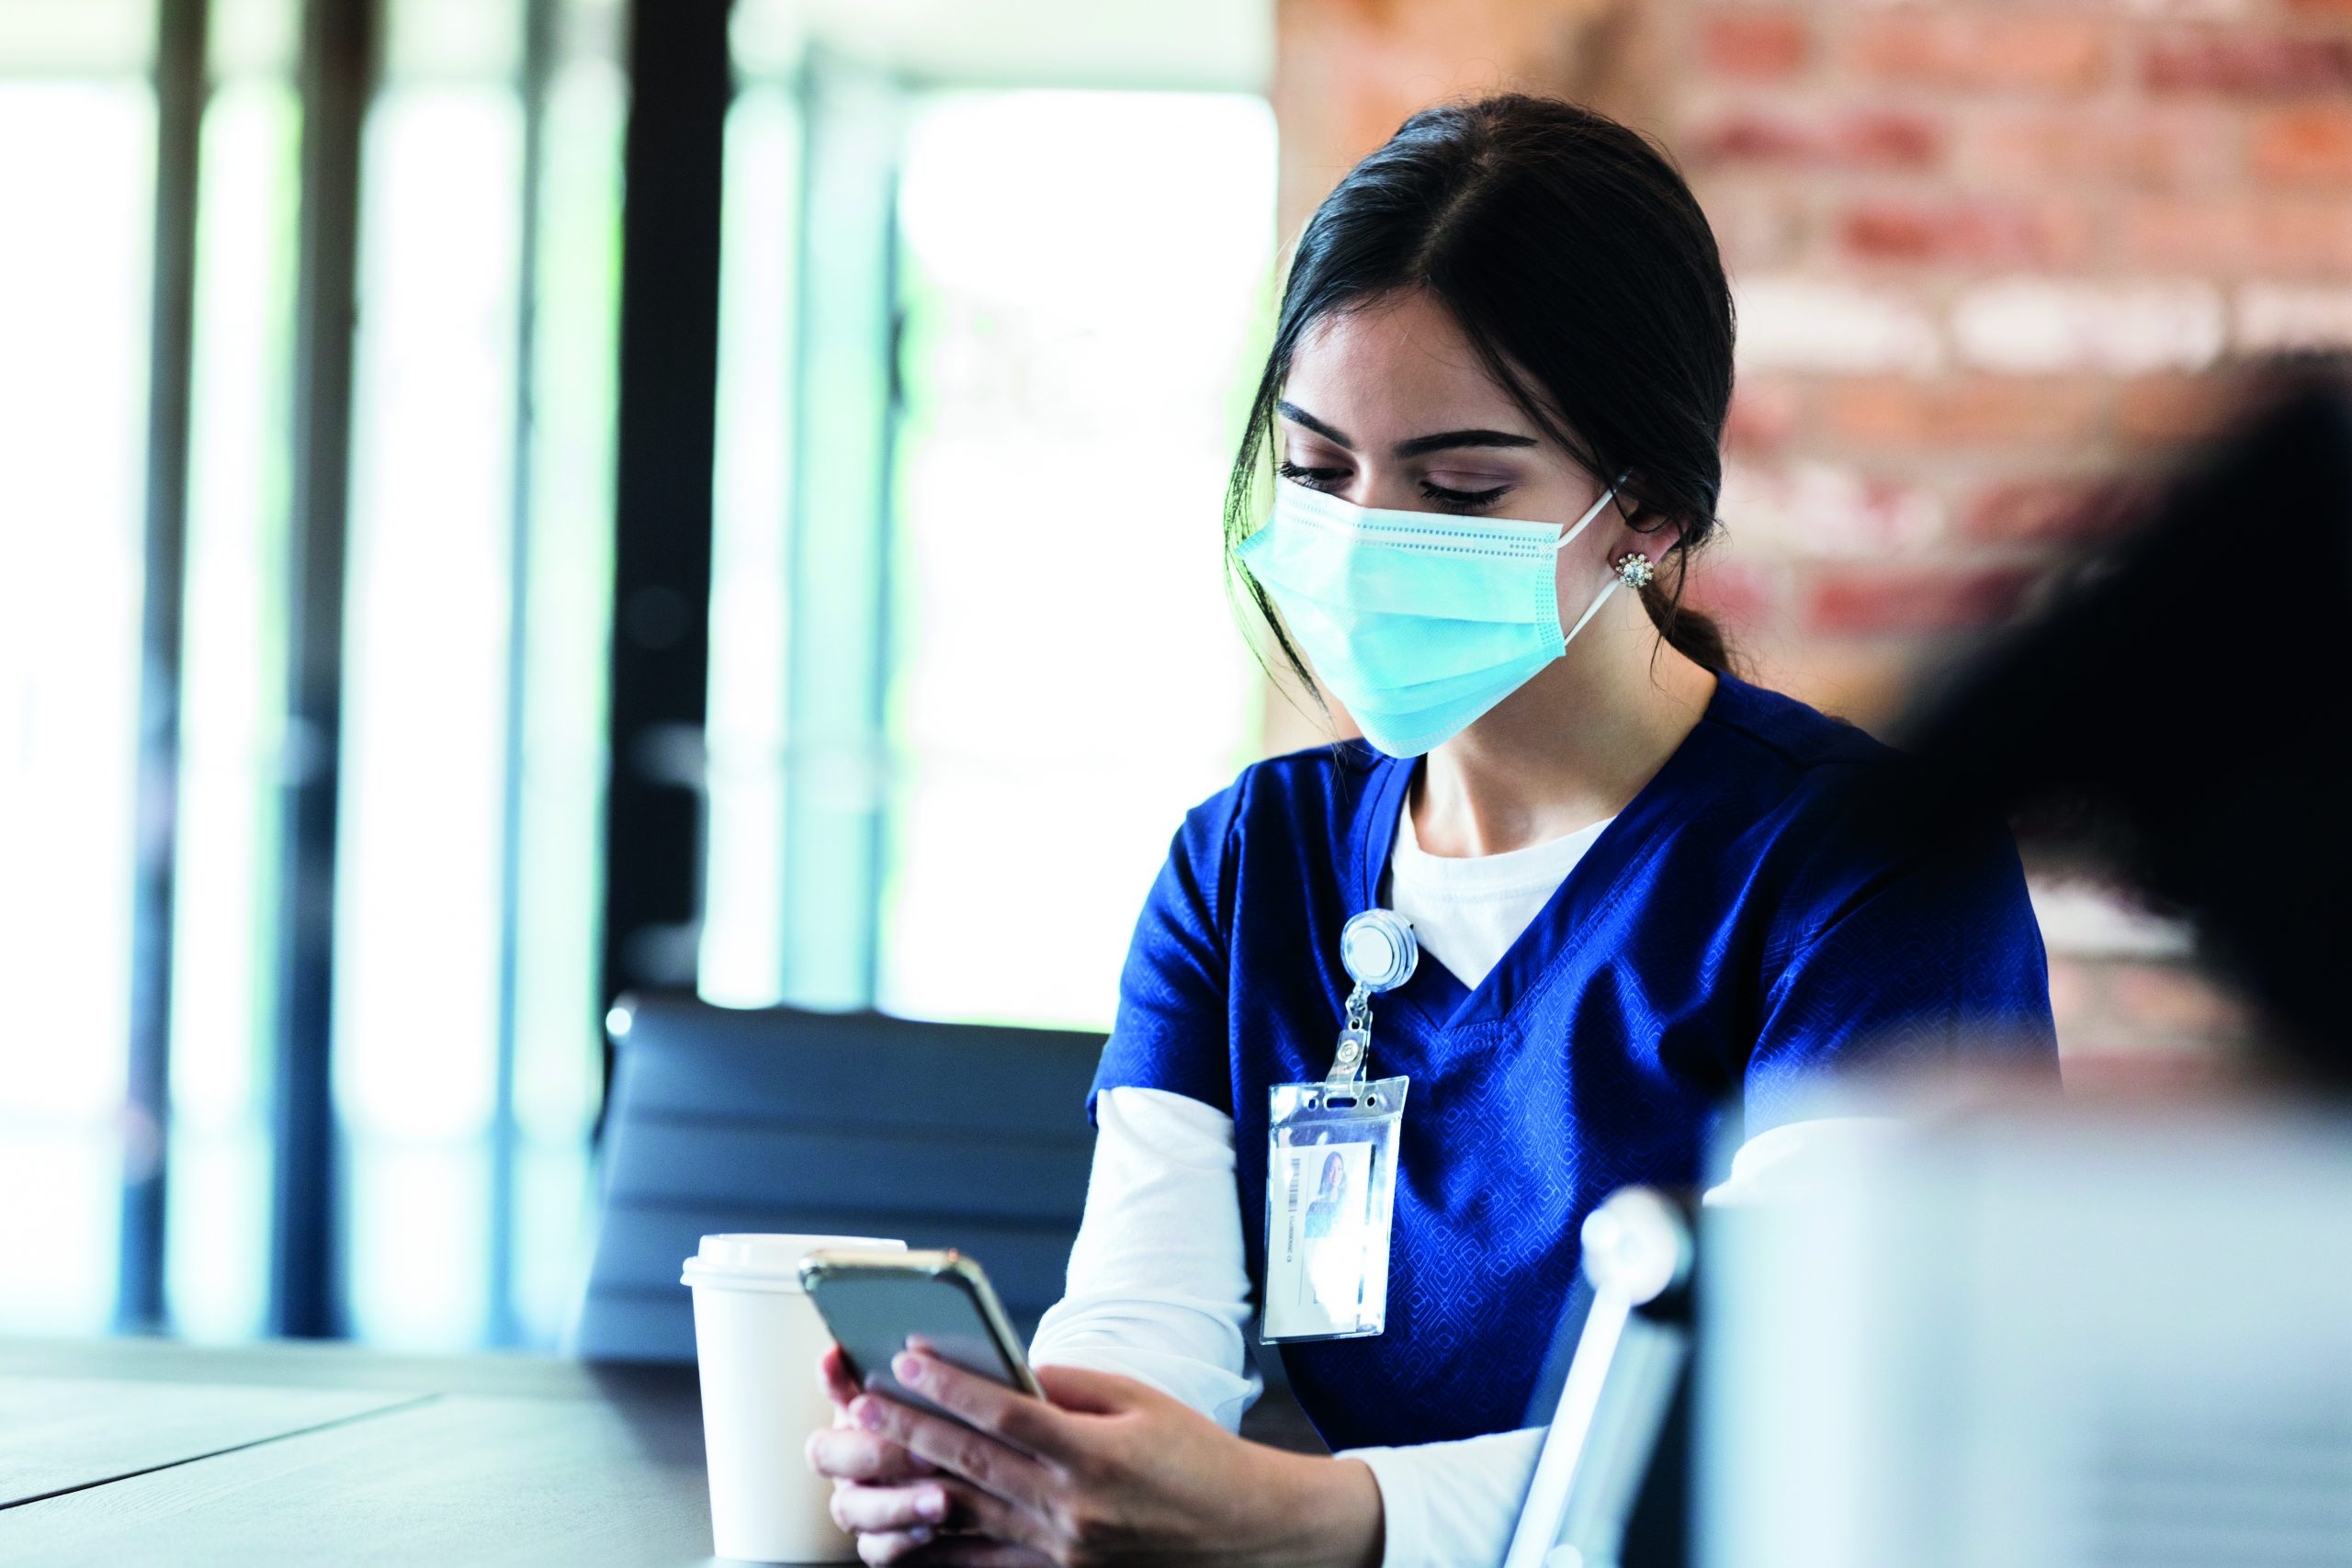 A female healthcare professional wears a mask while on break from her shift. She is checking for messages on her smartphone. She is wearing a protective face mask.